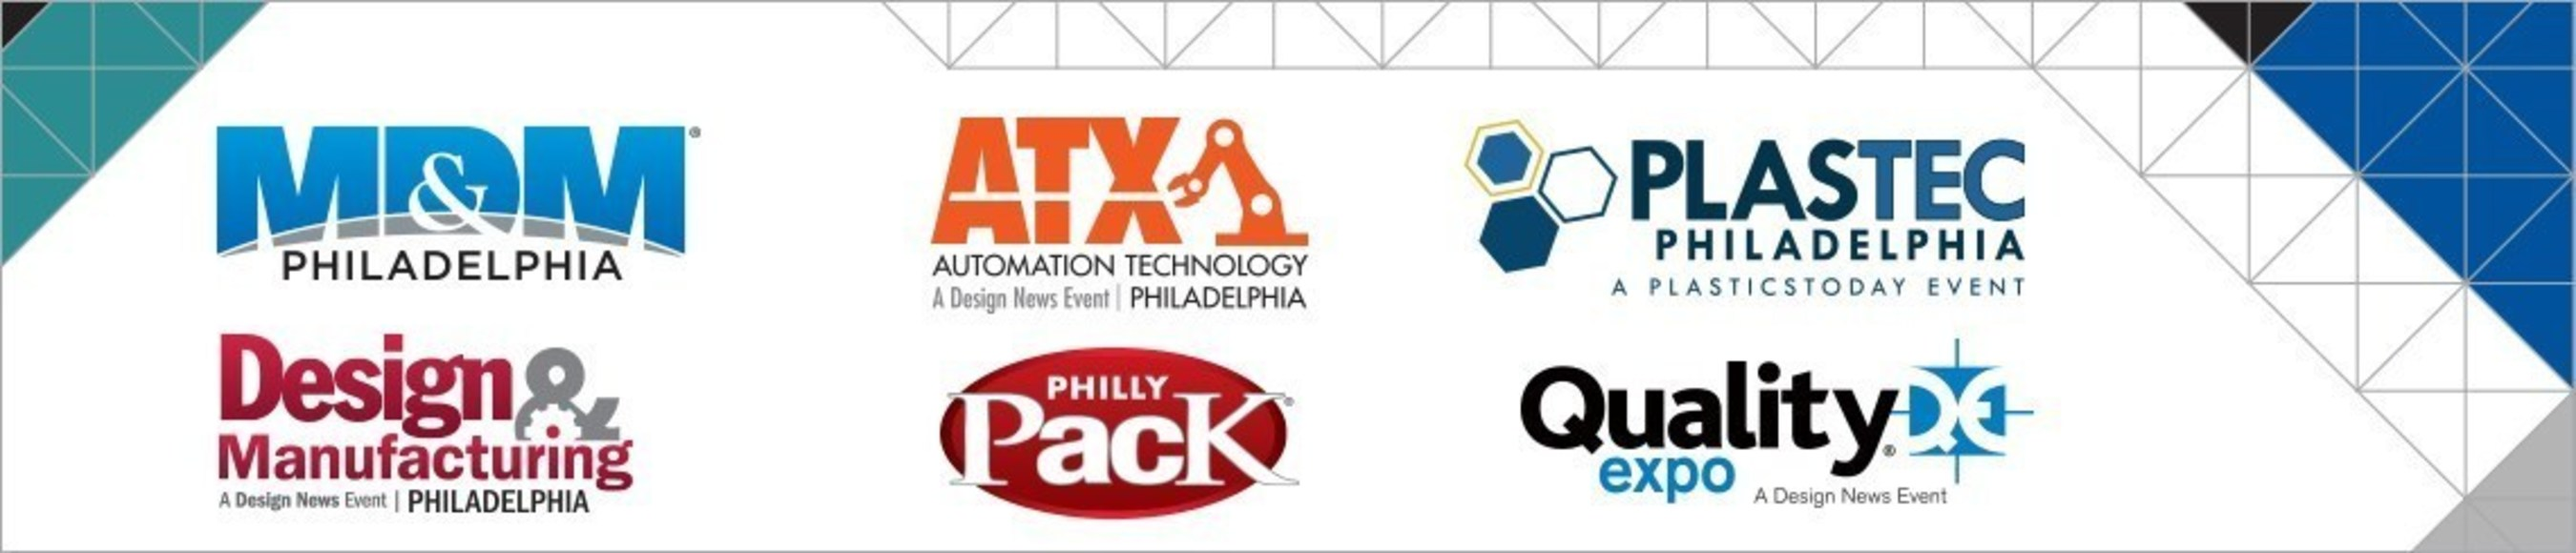 MD&M Philadelphia Welcomes HealthTech Talk Live Radio Show, Broadcasting from Expo & Conference This Week